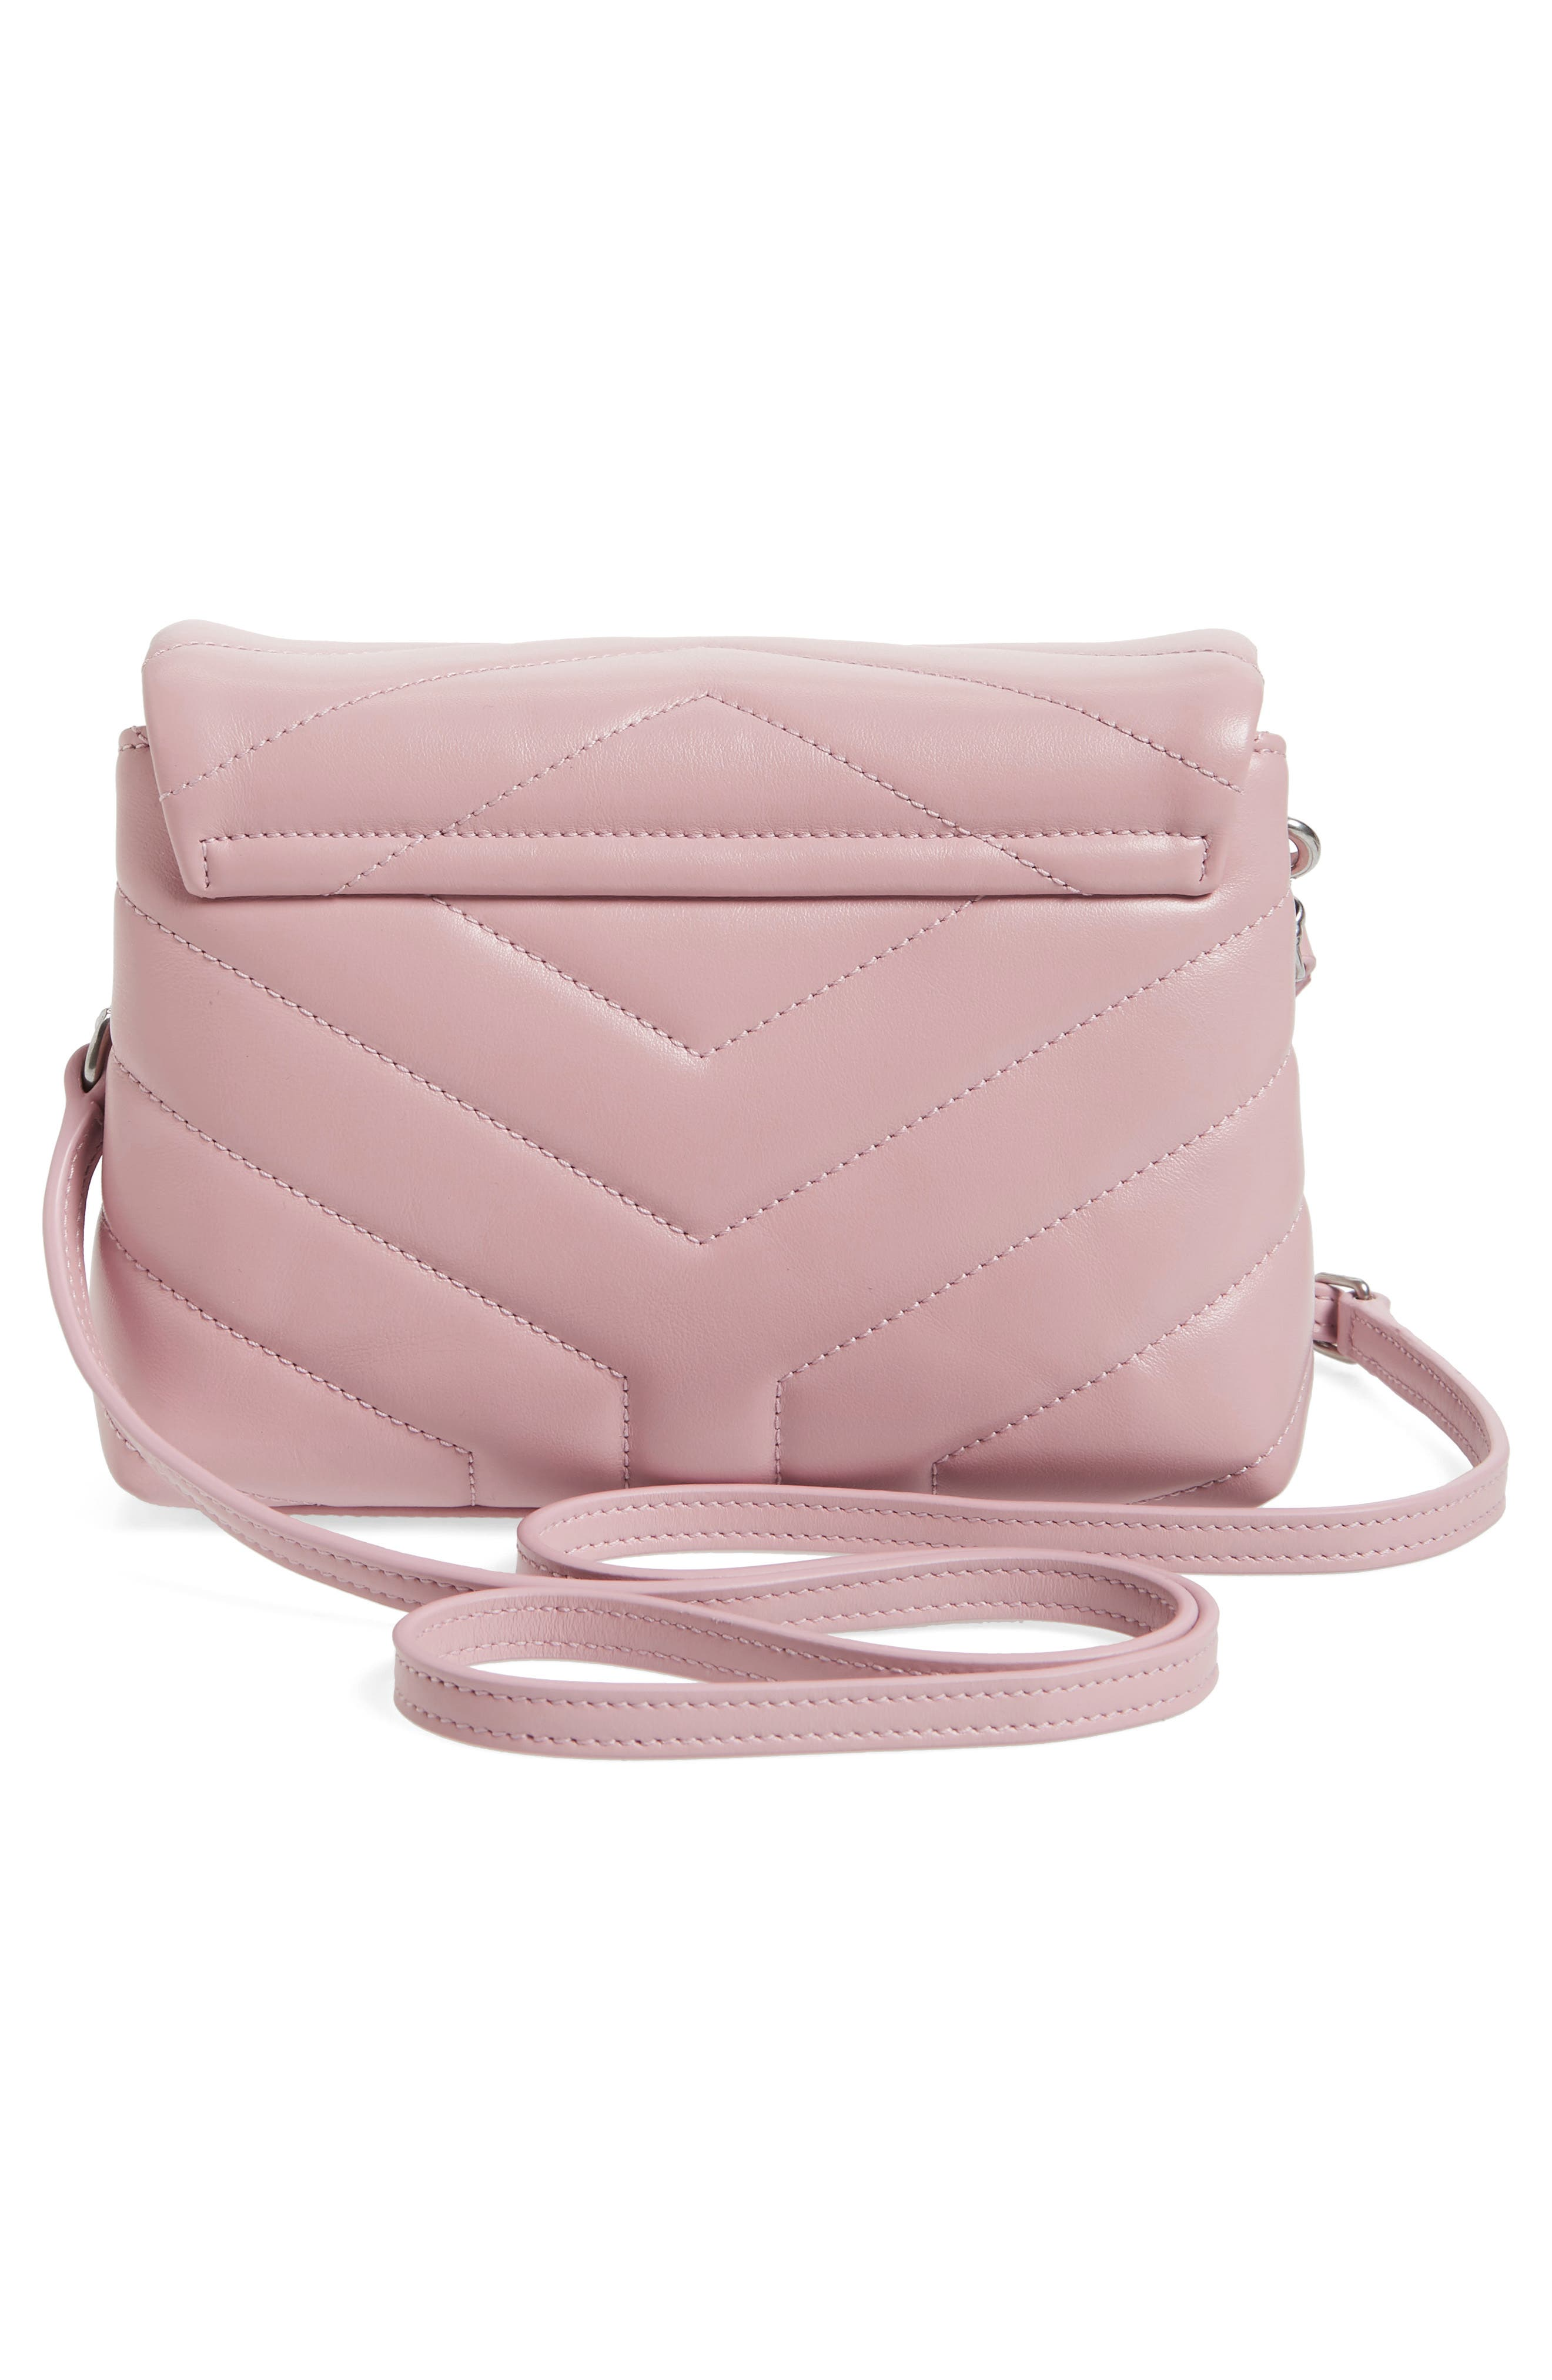 Toy LouLou Calfskin Leather Crossbody Bag,                             Alternate thumbnail 3, color,                             Tender Pink